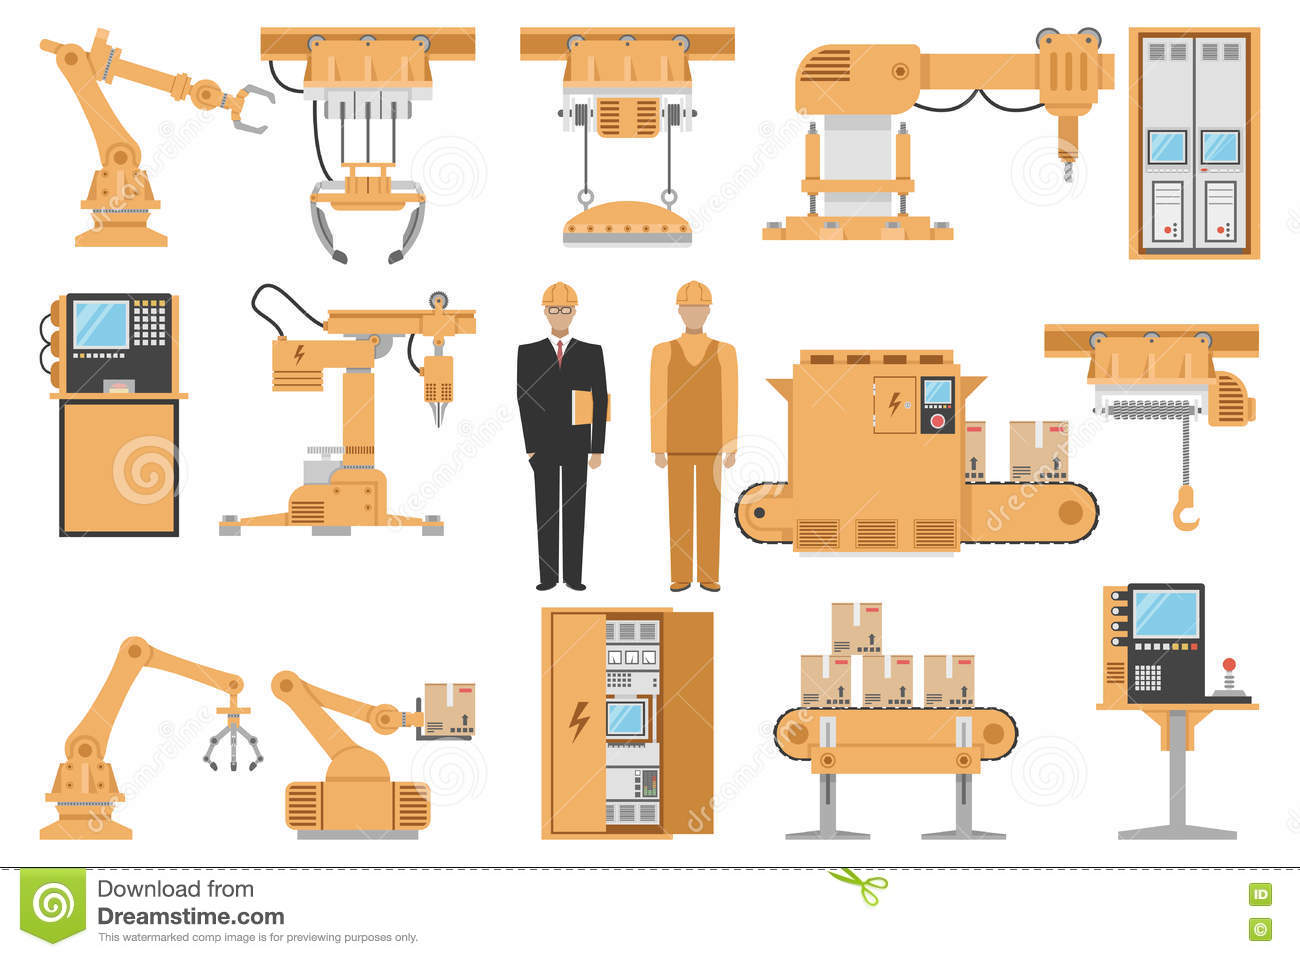 Assembly Icon: Industrial Assembly Line Flat Icons Set Vector